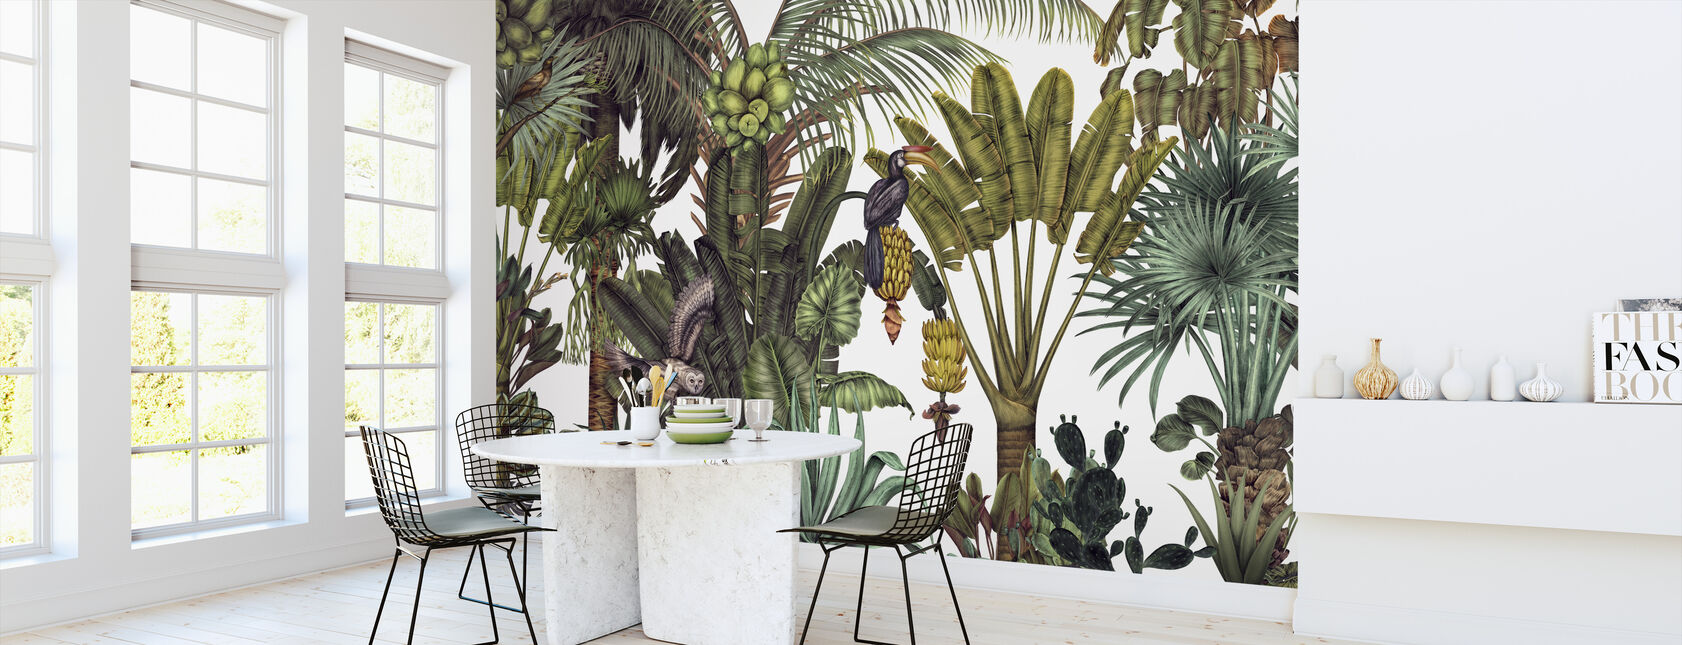 Find the Birds in the Jungle - Wallpaper - Kitchen